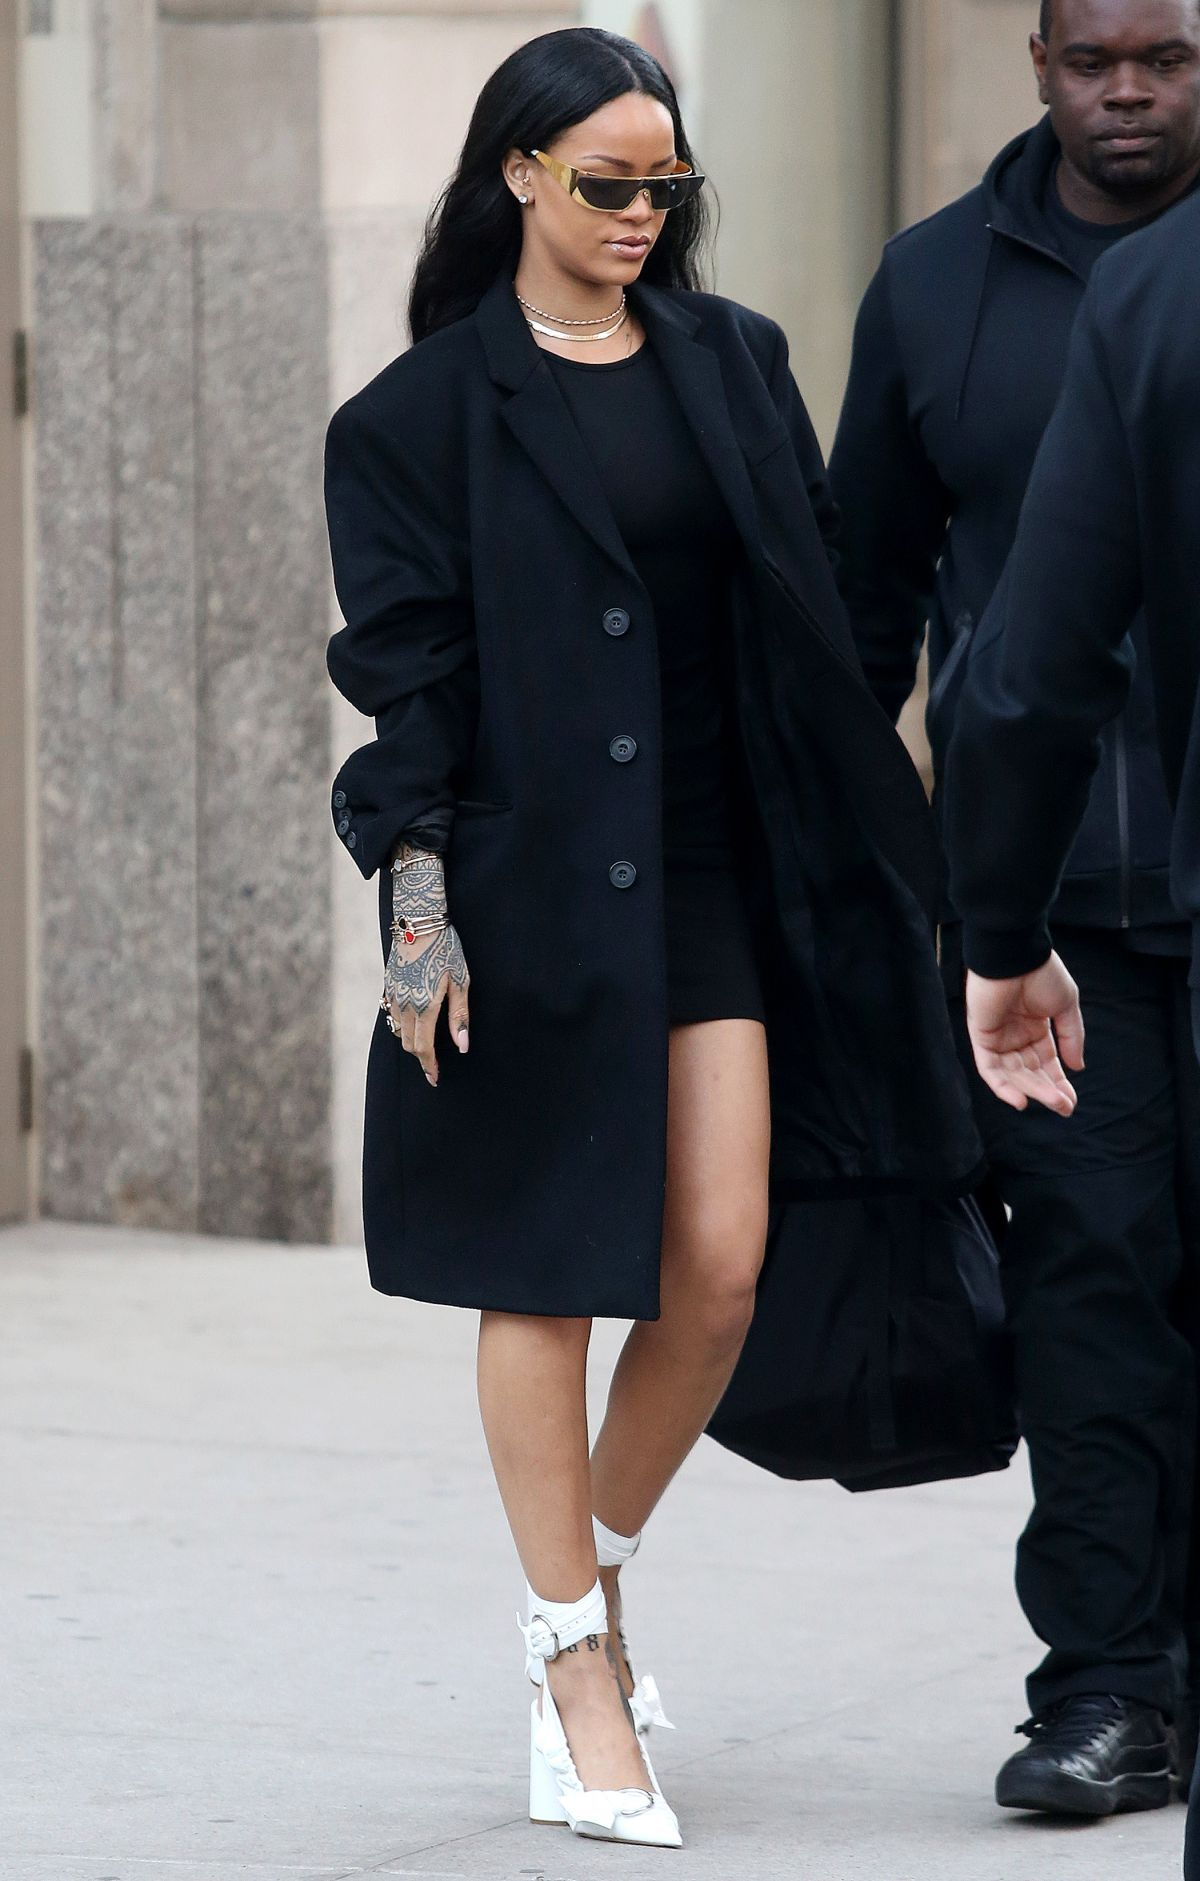 Image result for rihanna march 30th 2016